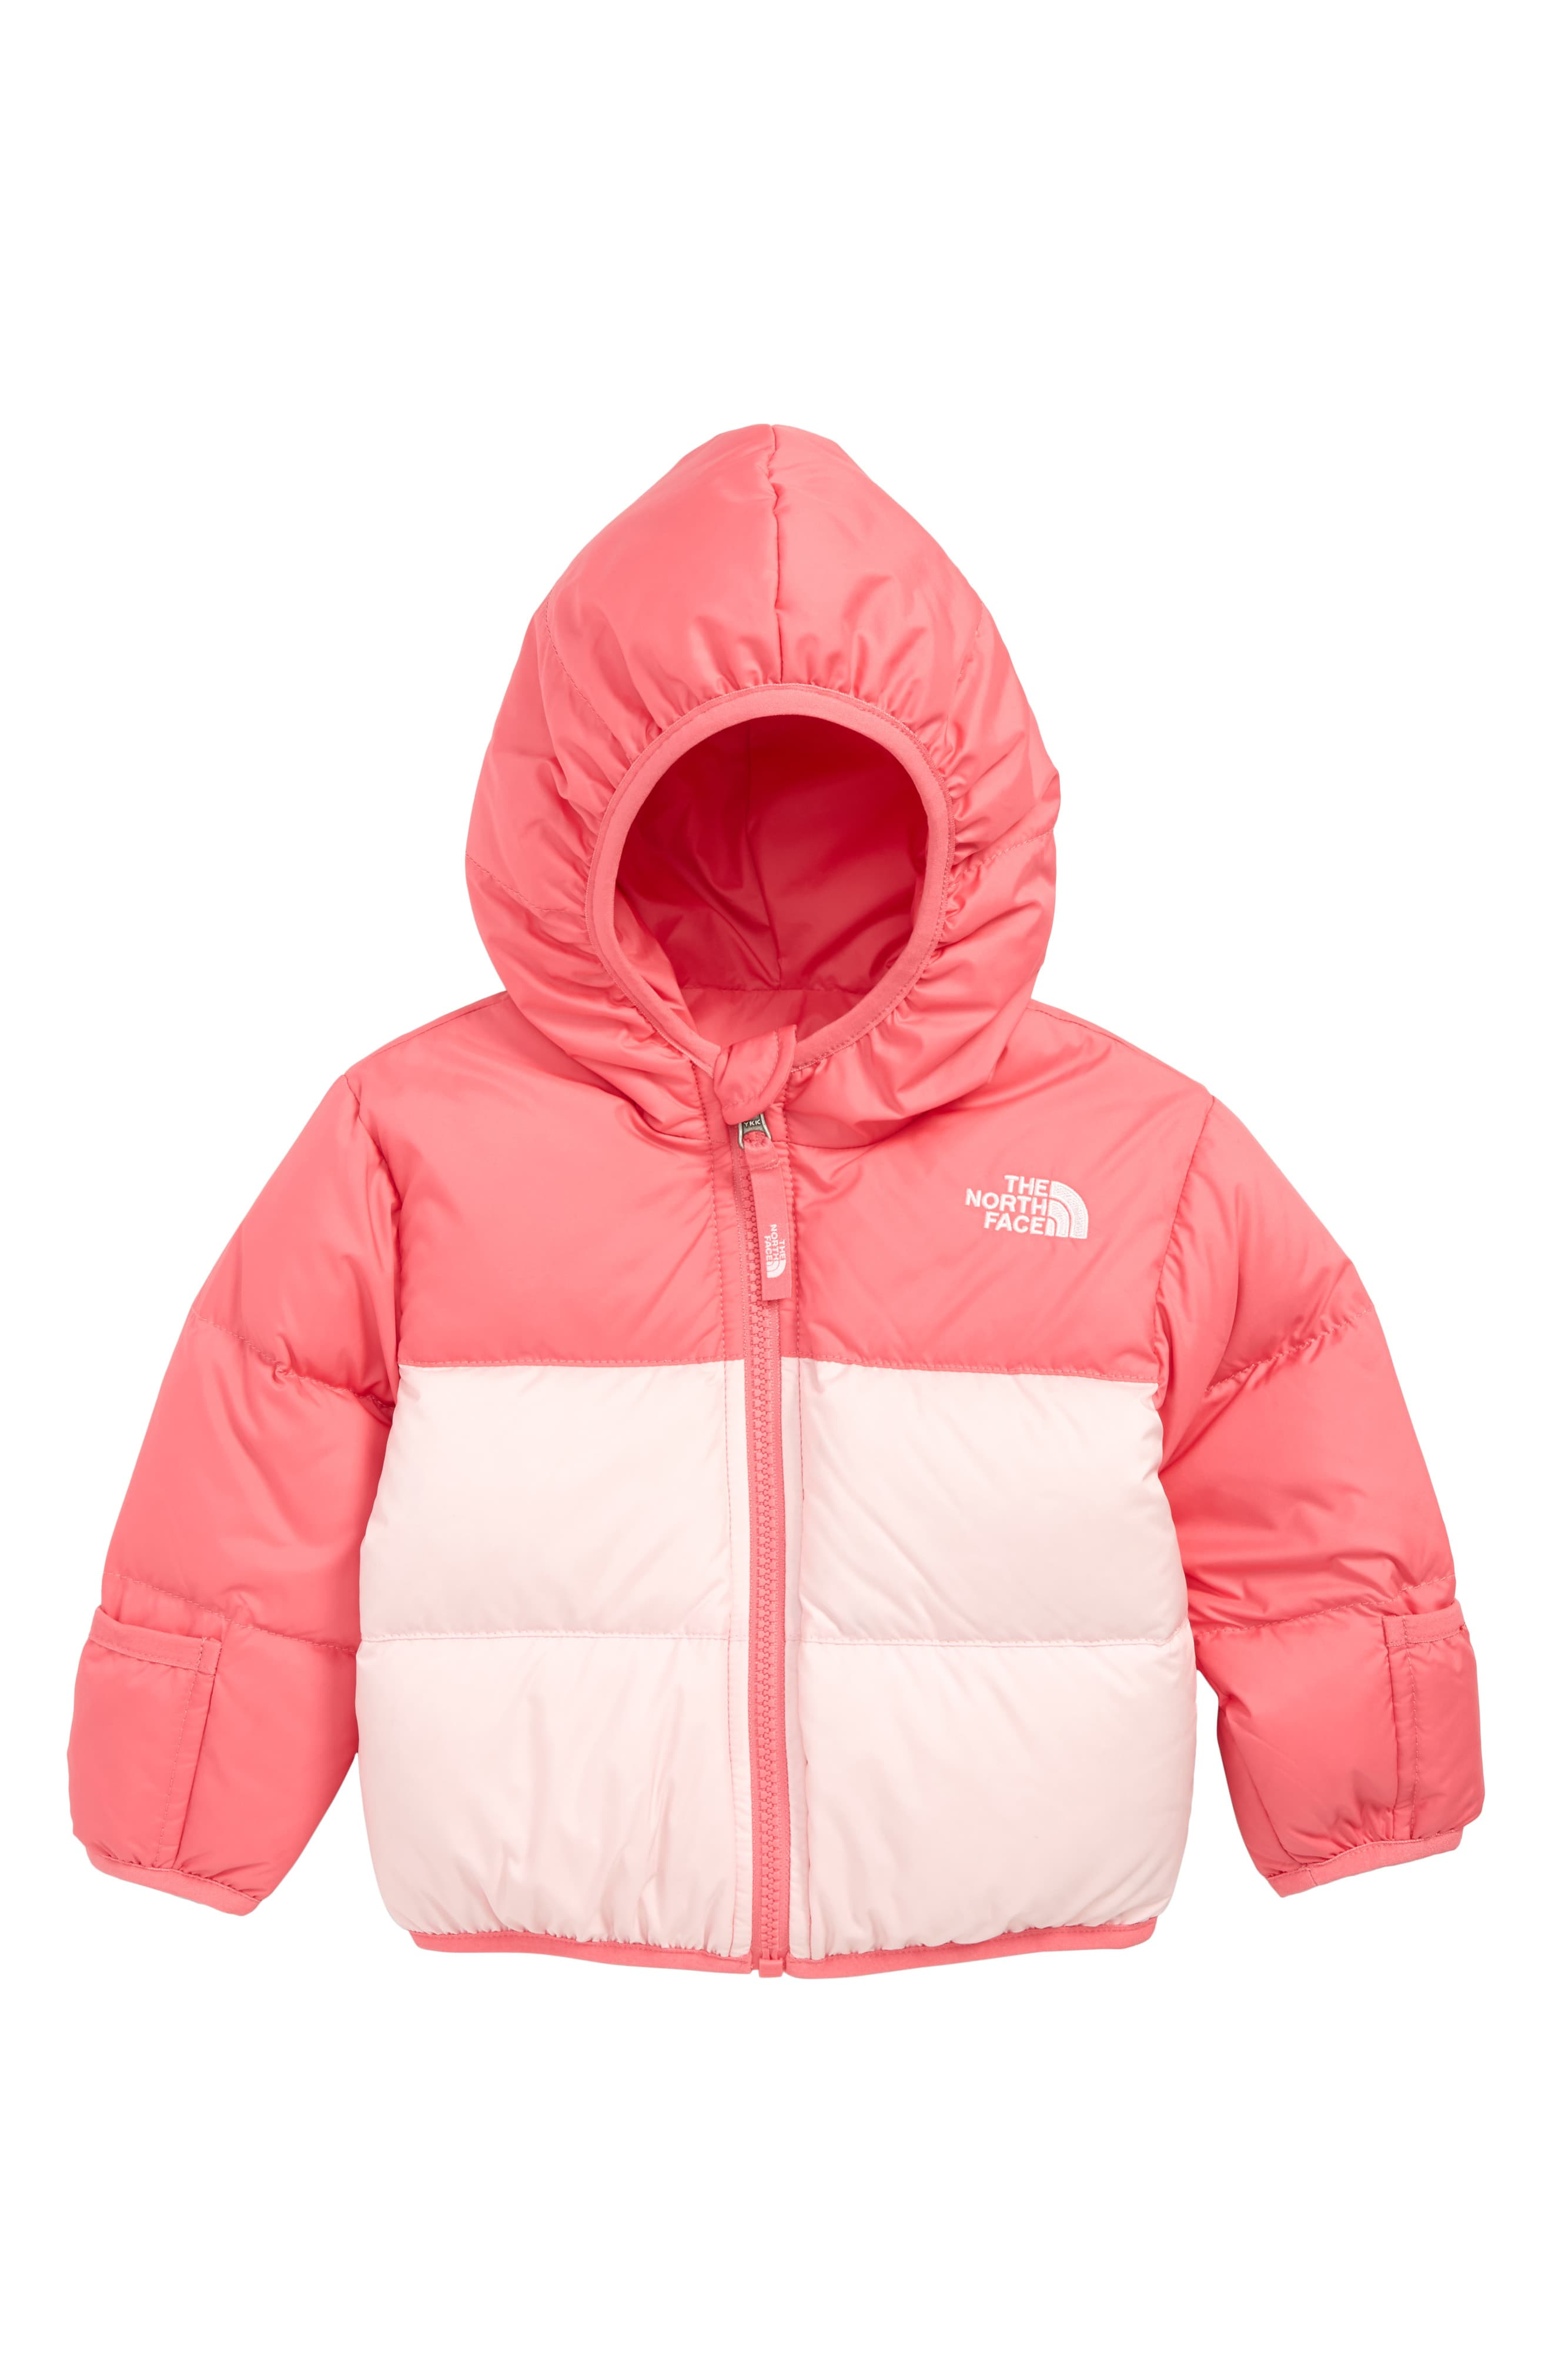 The North Face Moondoggy Water Repellent Reversible Down Jacket Baby Nordstrom Girl Outfits Down Jacket Baby Girl Clothes [ 4048 x 2640 Pixel ]